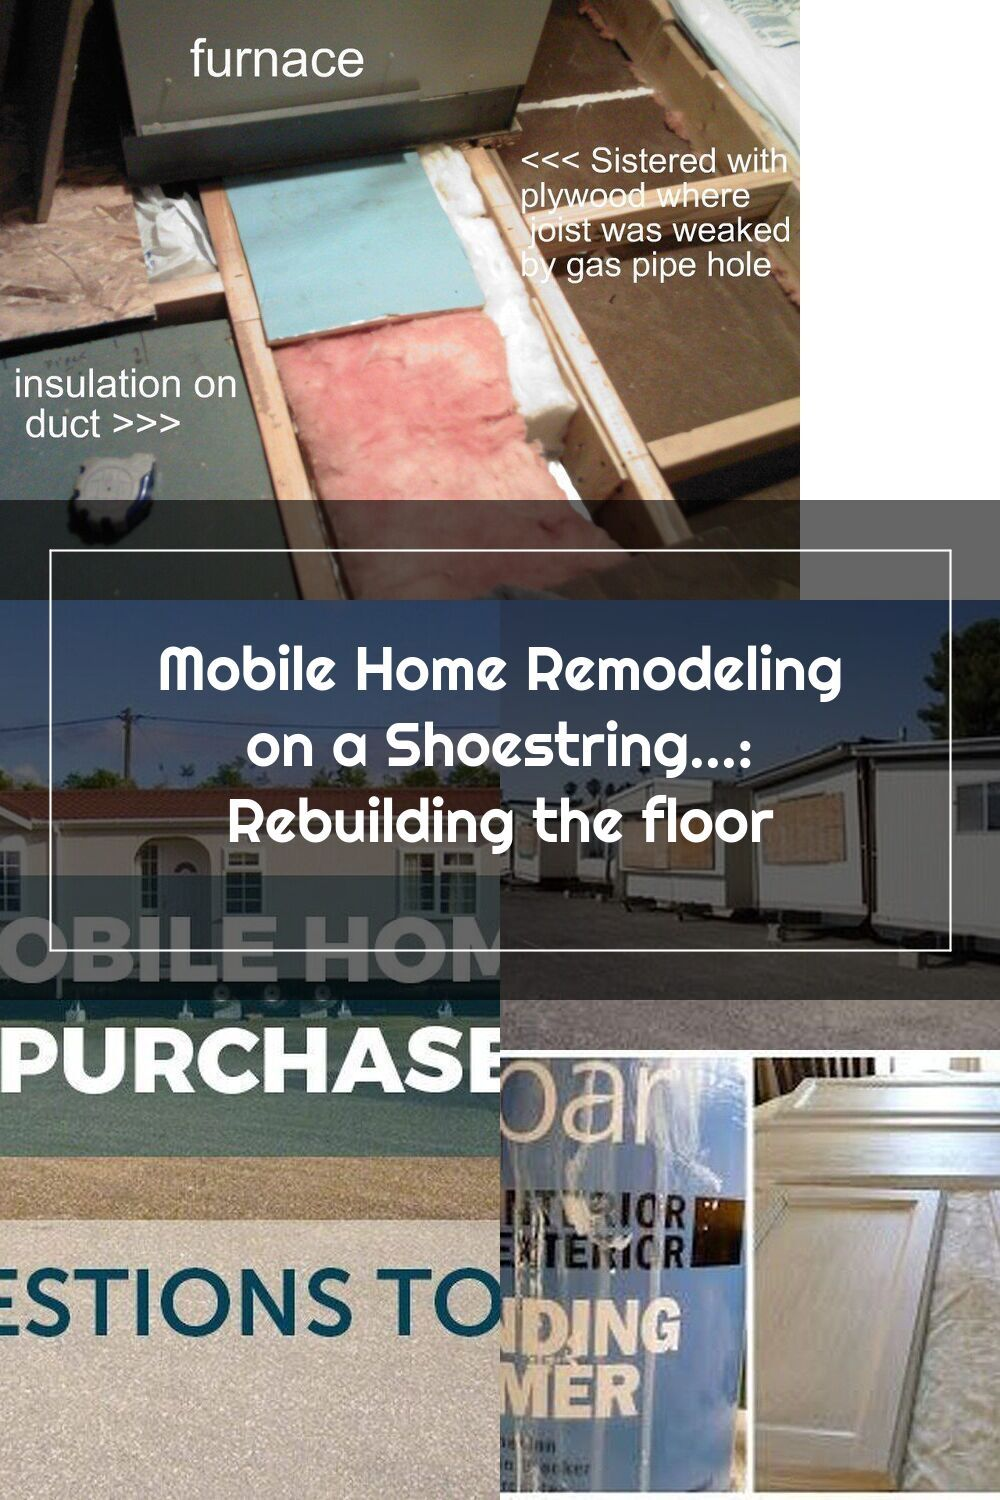 Mobile Home Remodeling on a Shoestring... Rebuilding the